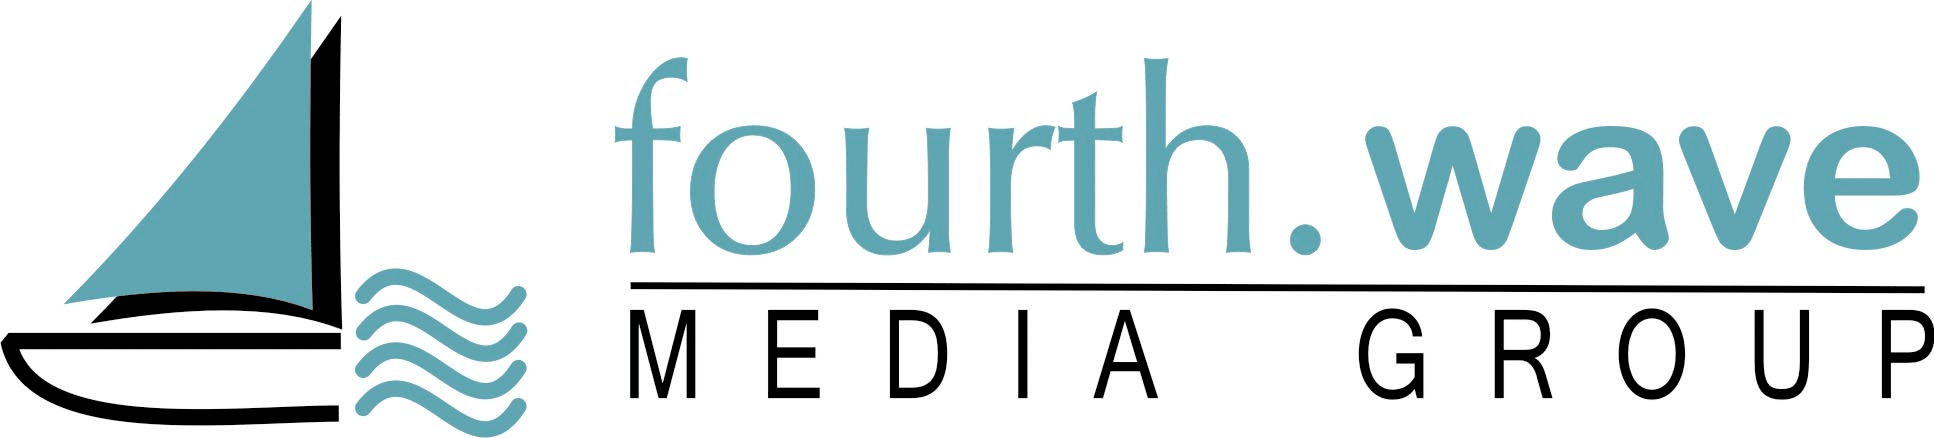 Fourthwave Media